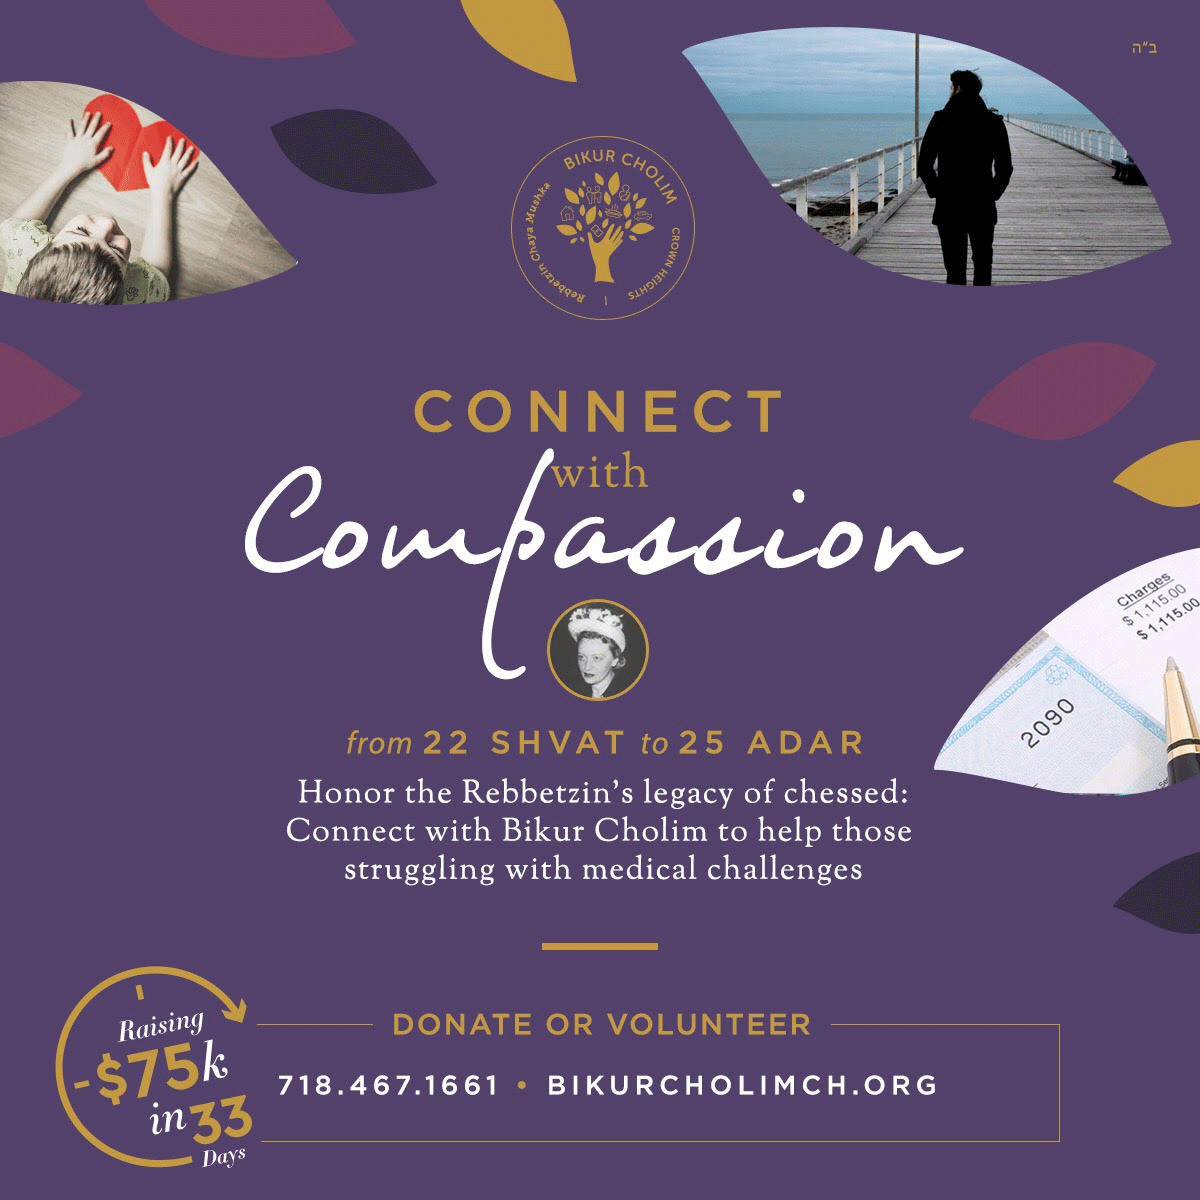 Donate or Volunteer - Connect with Compassion